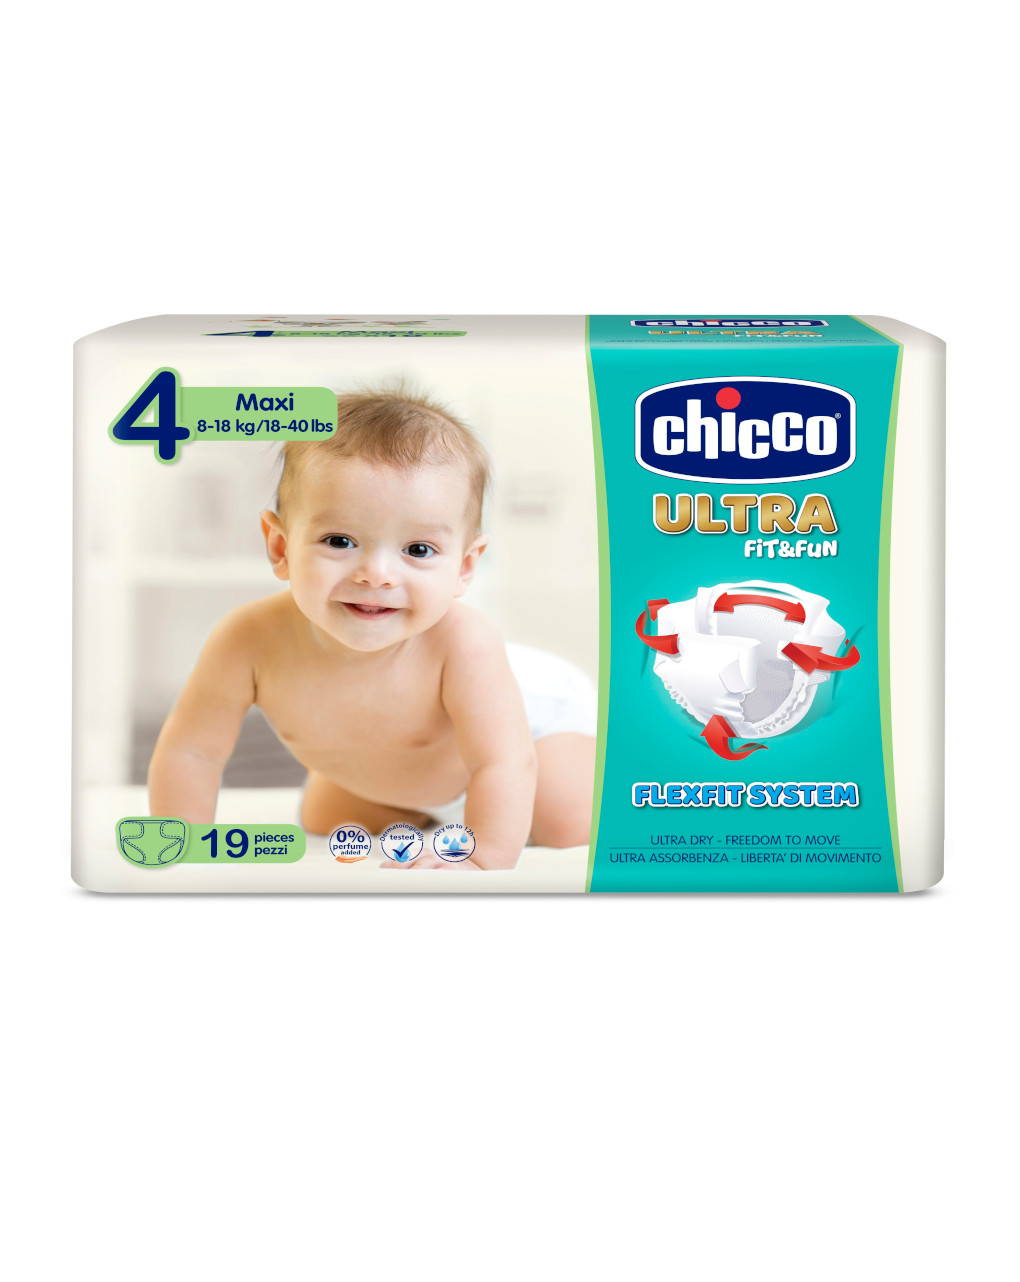 Chicco - pannolini ultra soft tg. 4 (8-18 kg) - pacco singolo 19 pz - Chicco